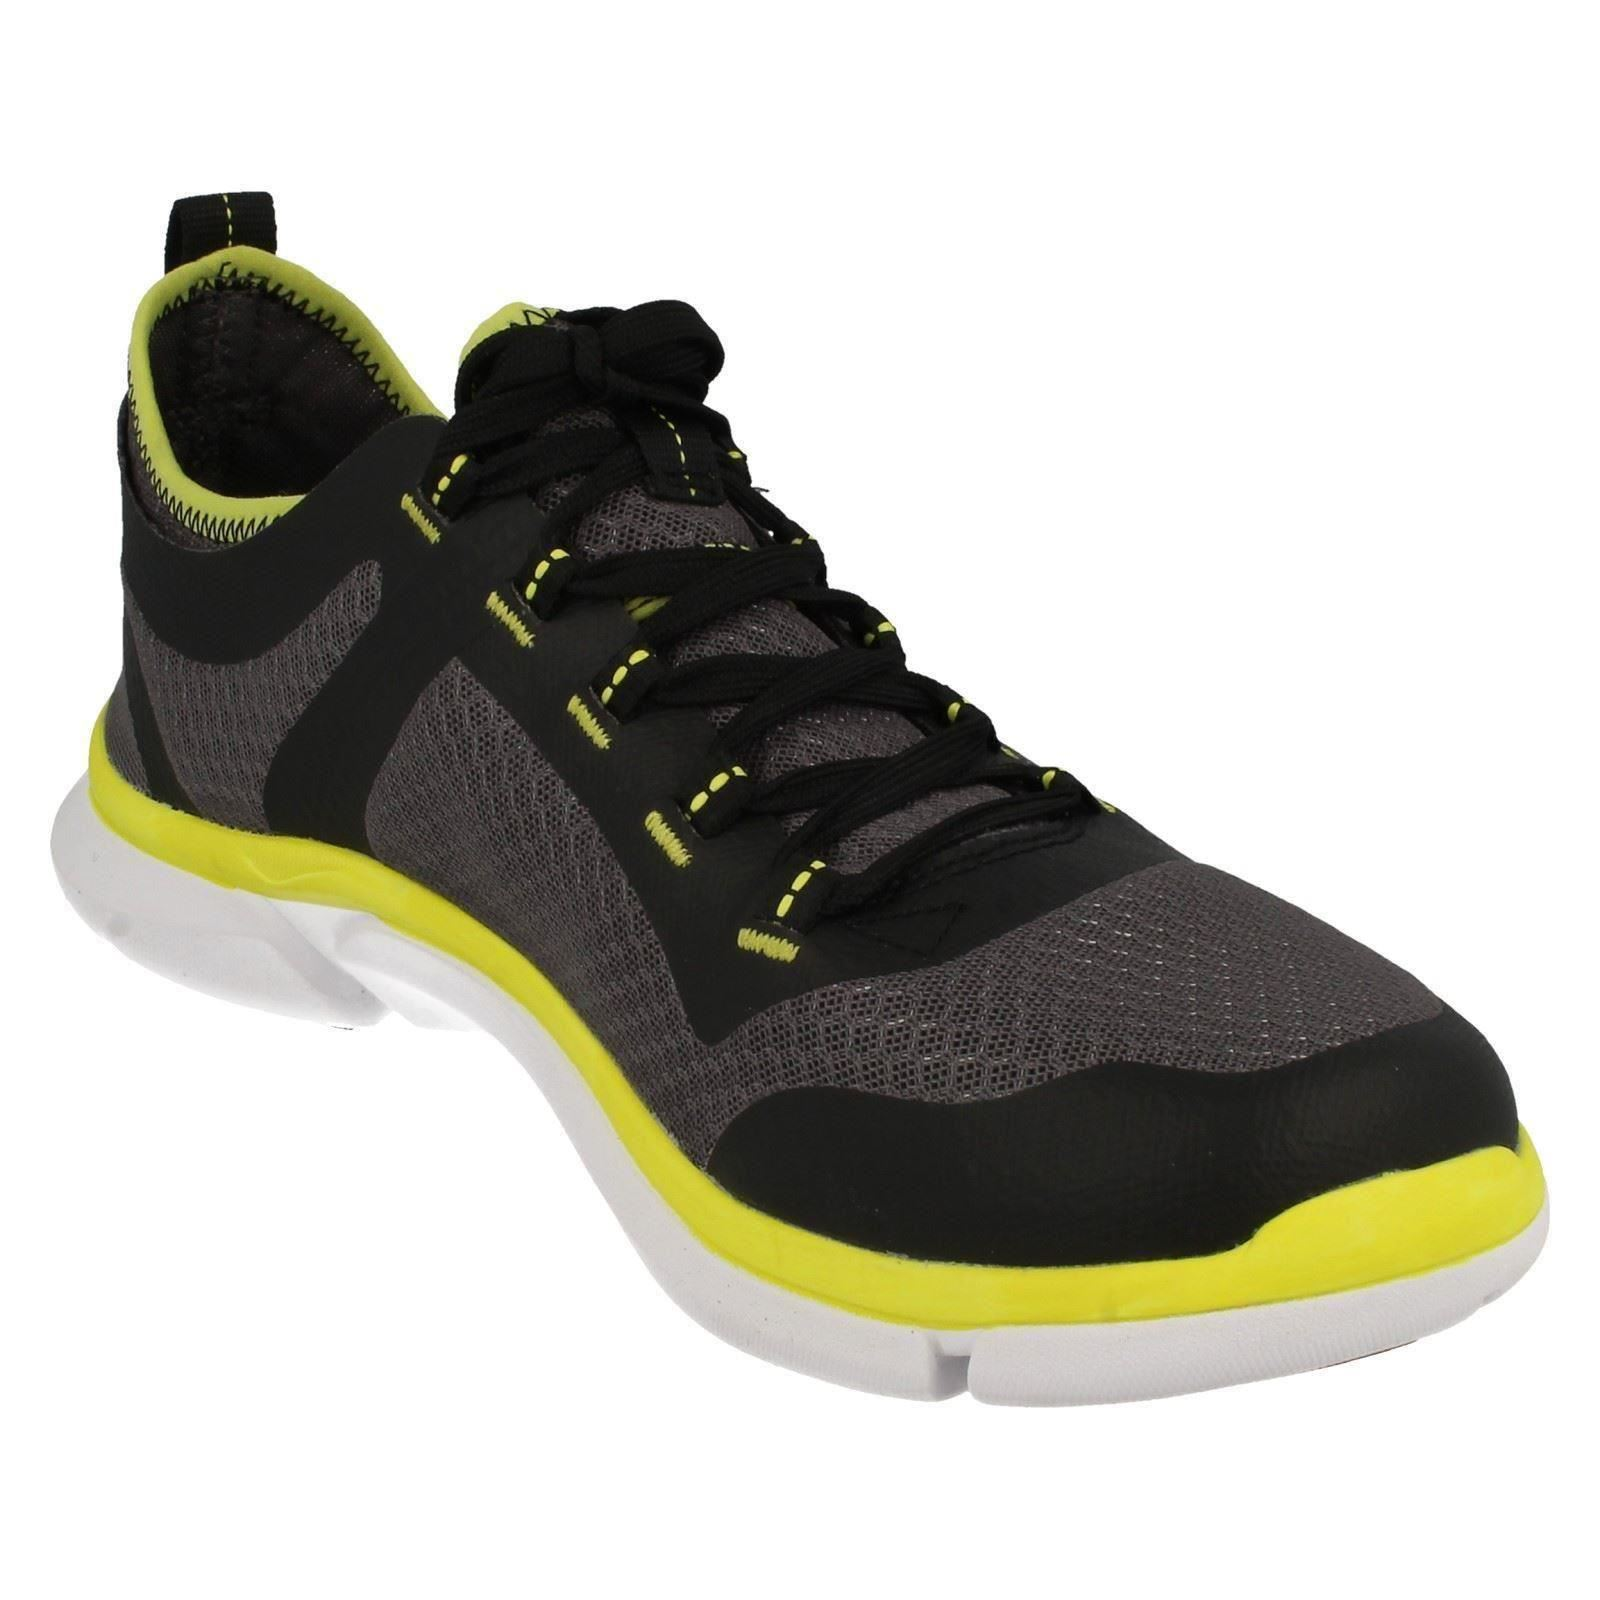 Mens-Clarks-Triken-Active-Casual-Trainers thumbnail 8